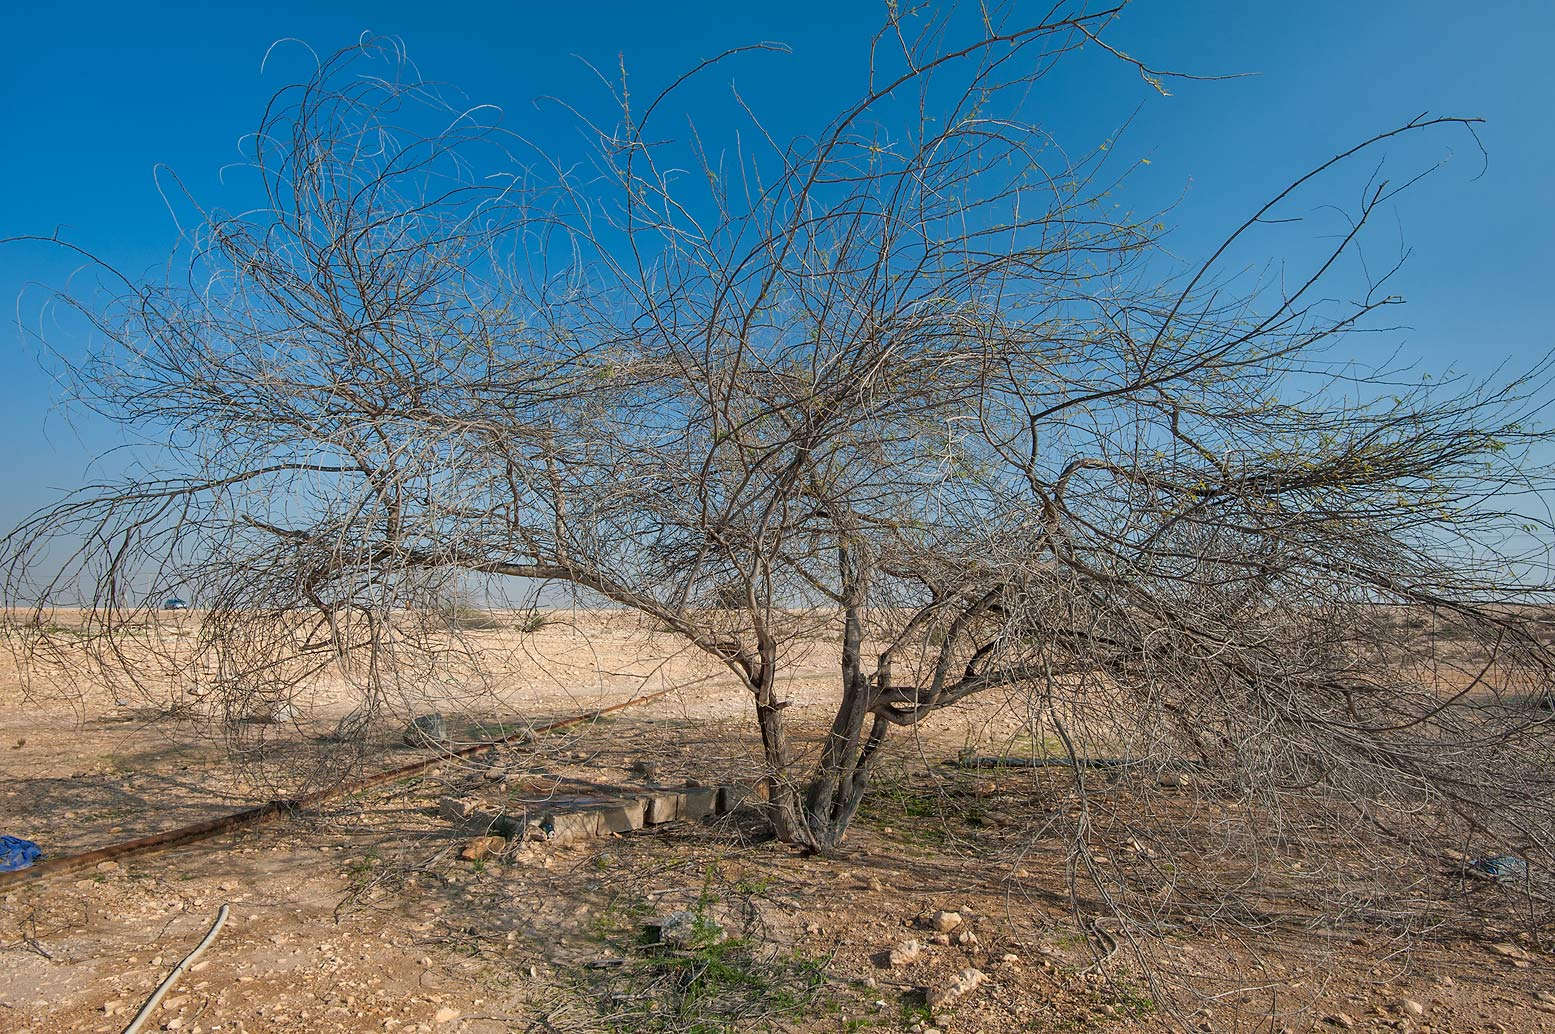 Dry mesquite tree (Prosopis juliflora) near a road to Zubara. North-western Qatar